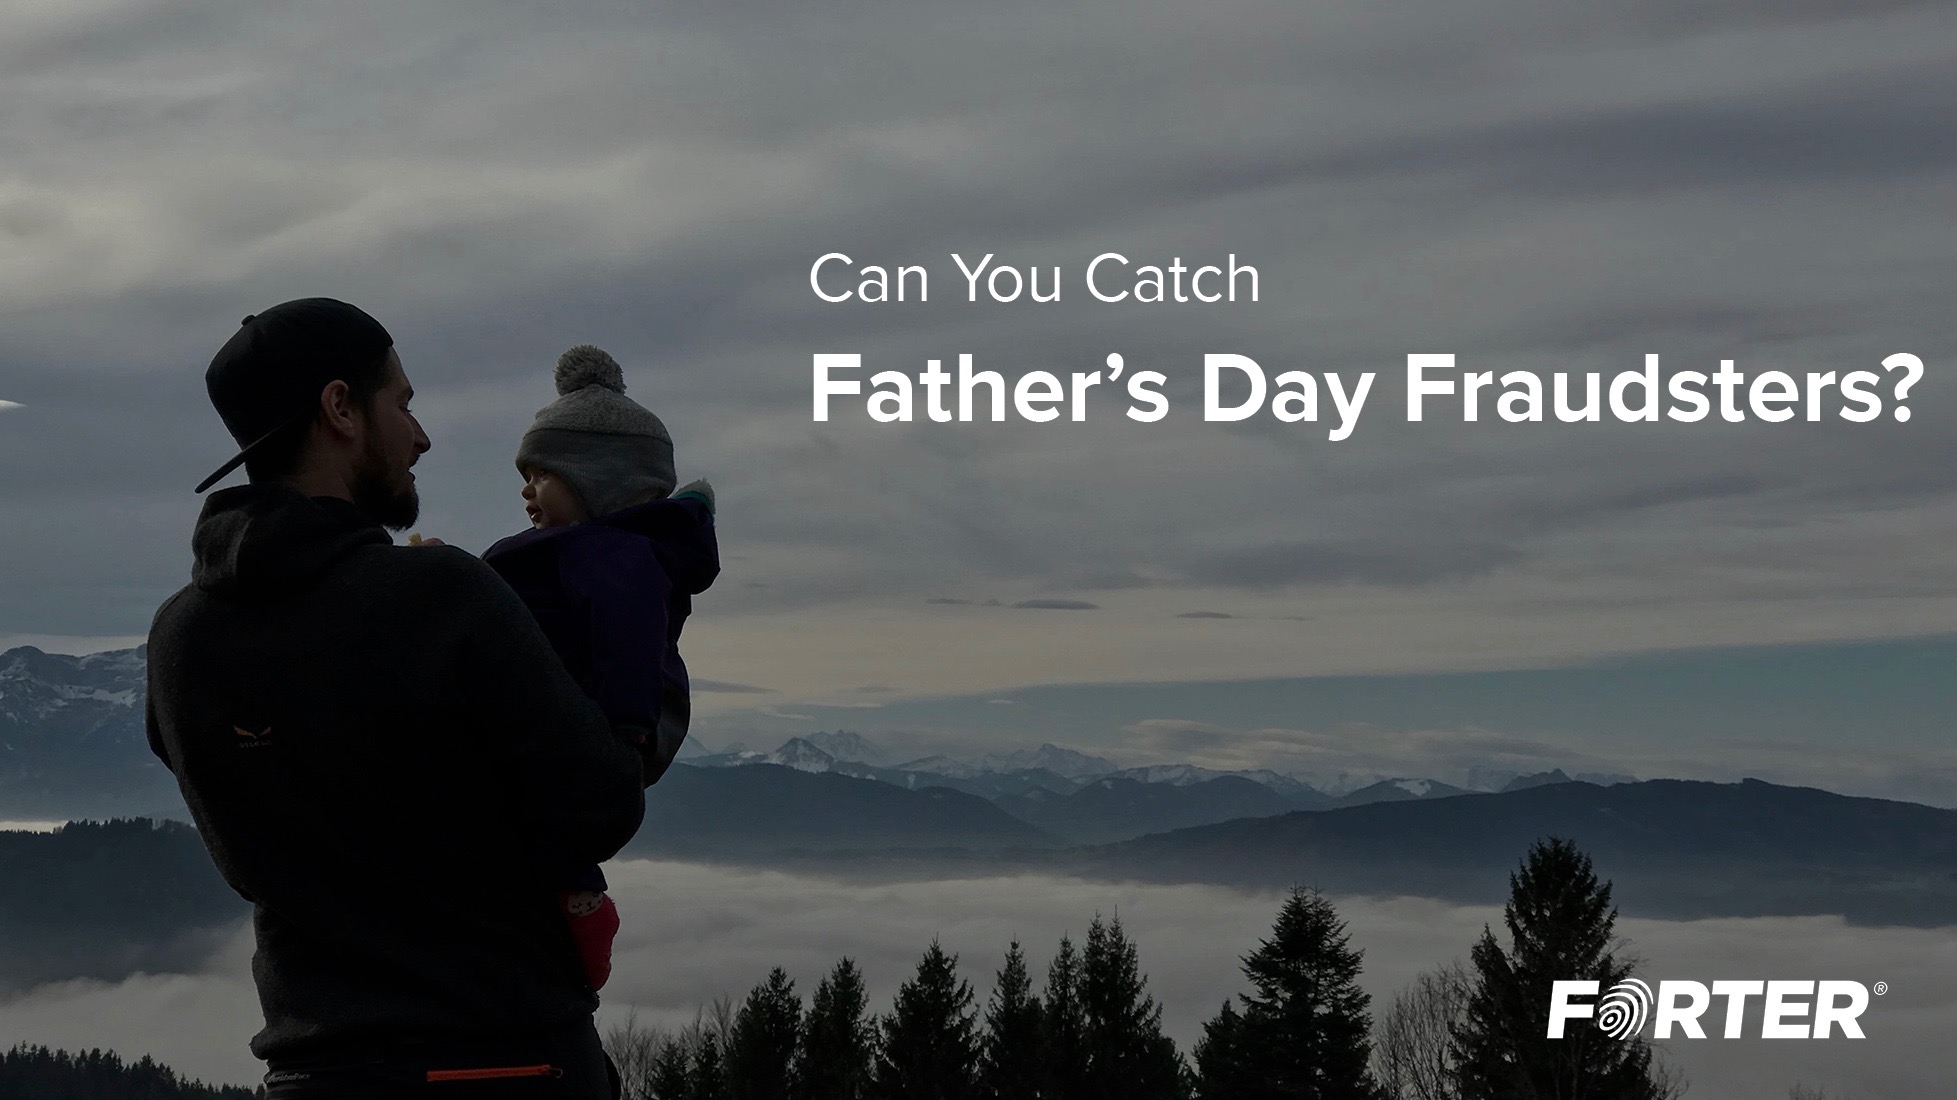 Can You Catch the Father's Day Fraudsters? Take Our Quiz